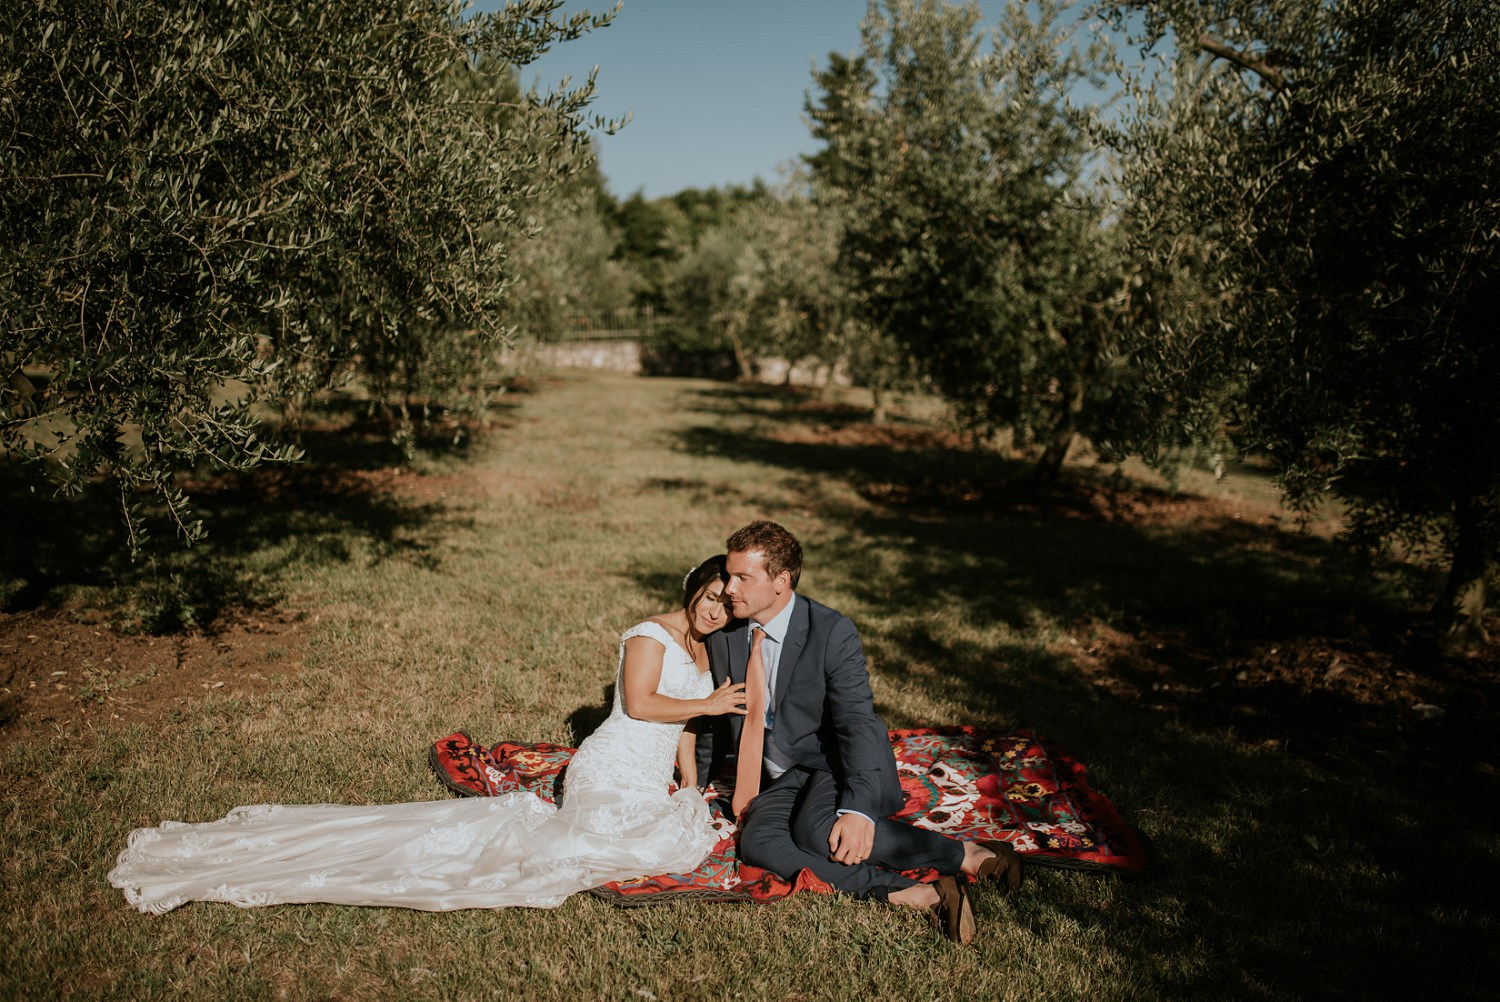 croatia-wedding-photographer-istria-sanrocco_0037.jpg